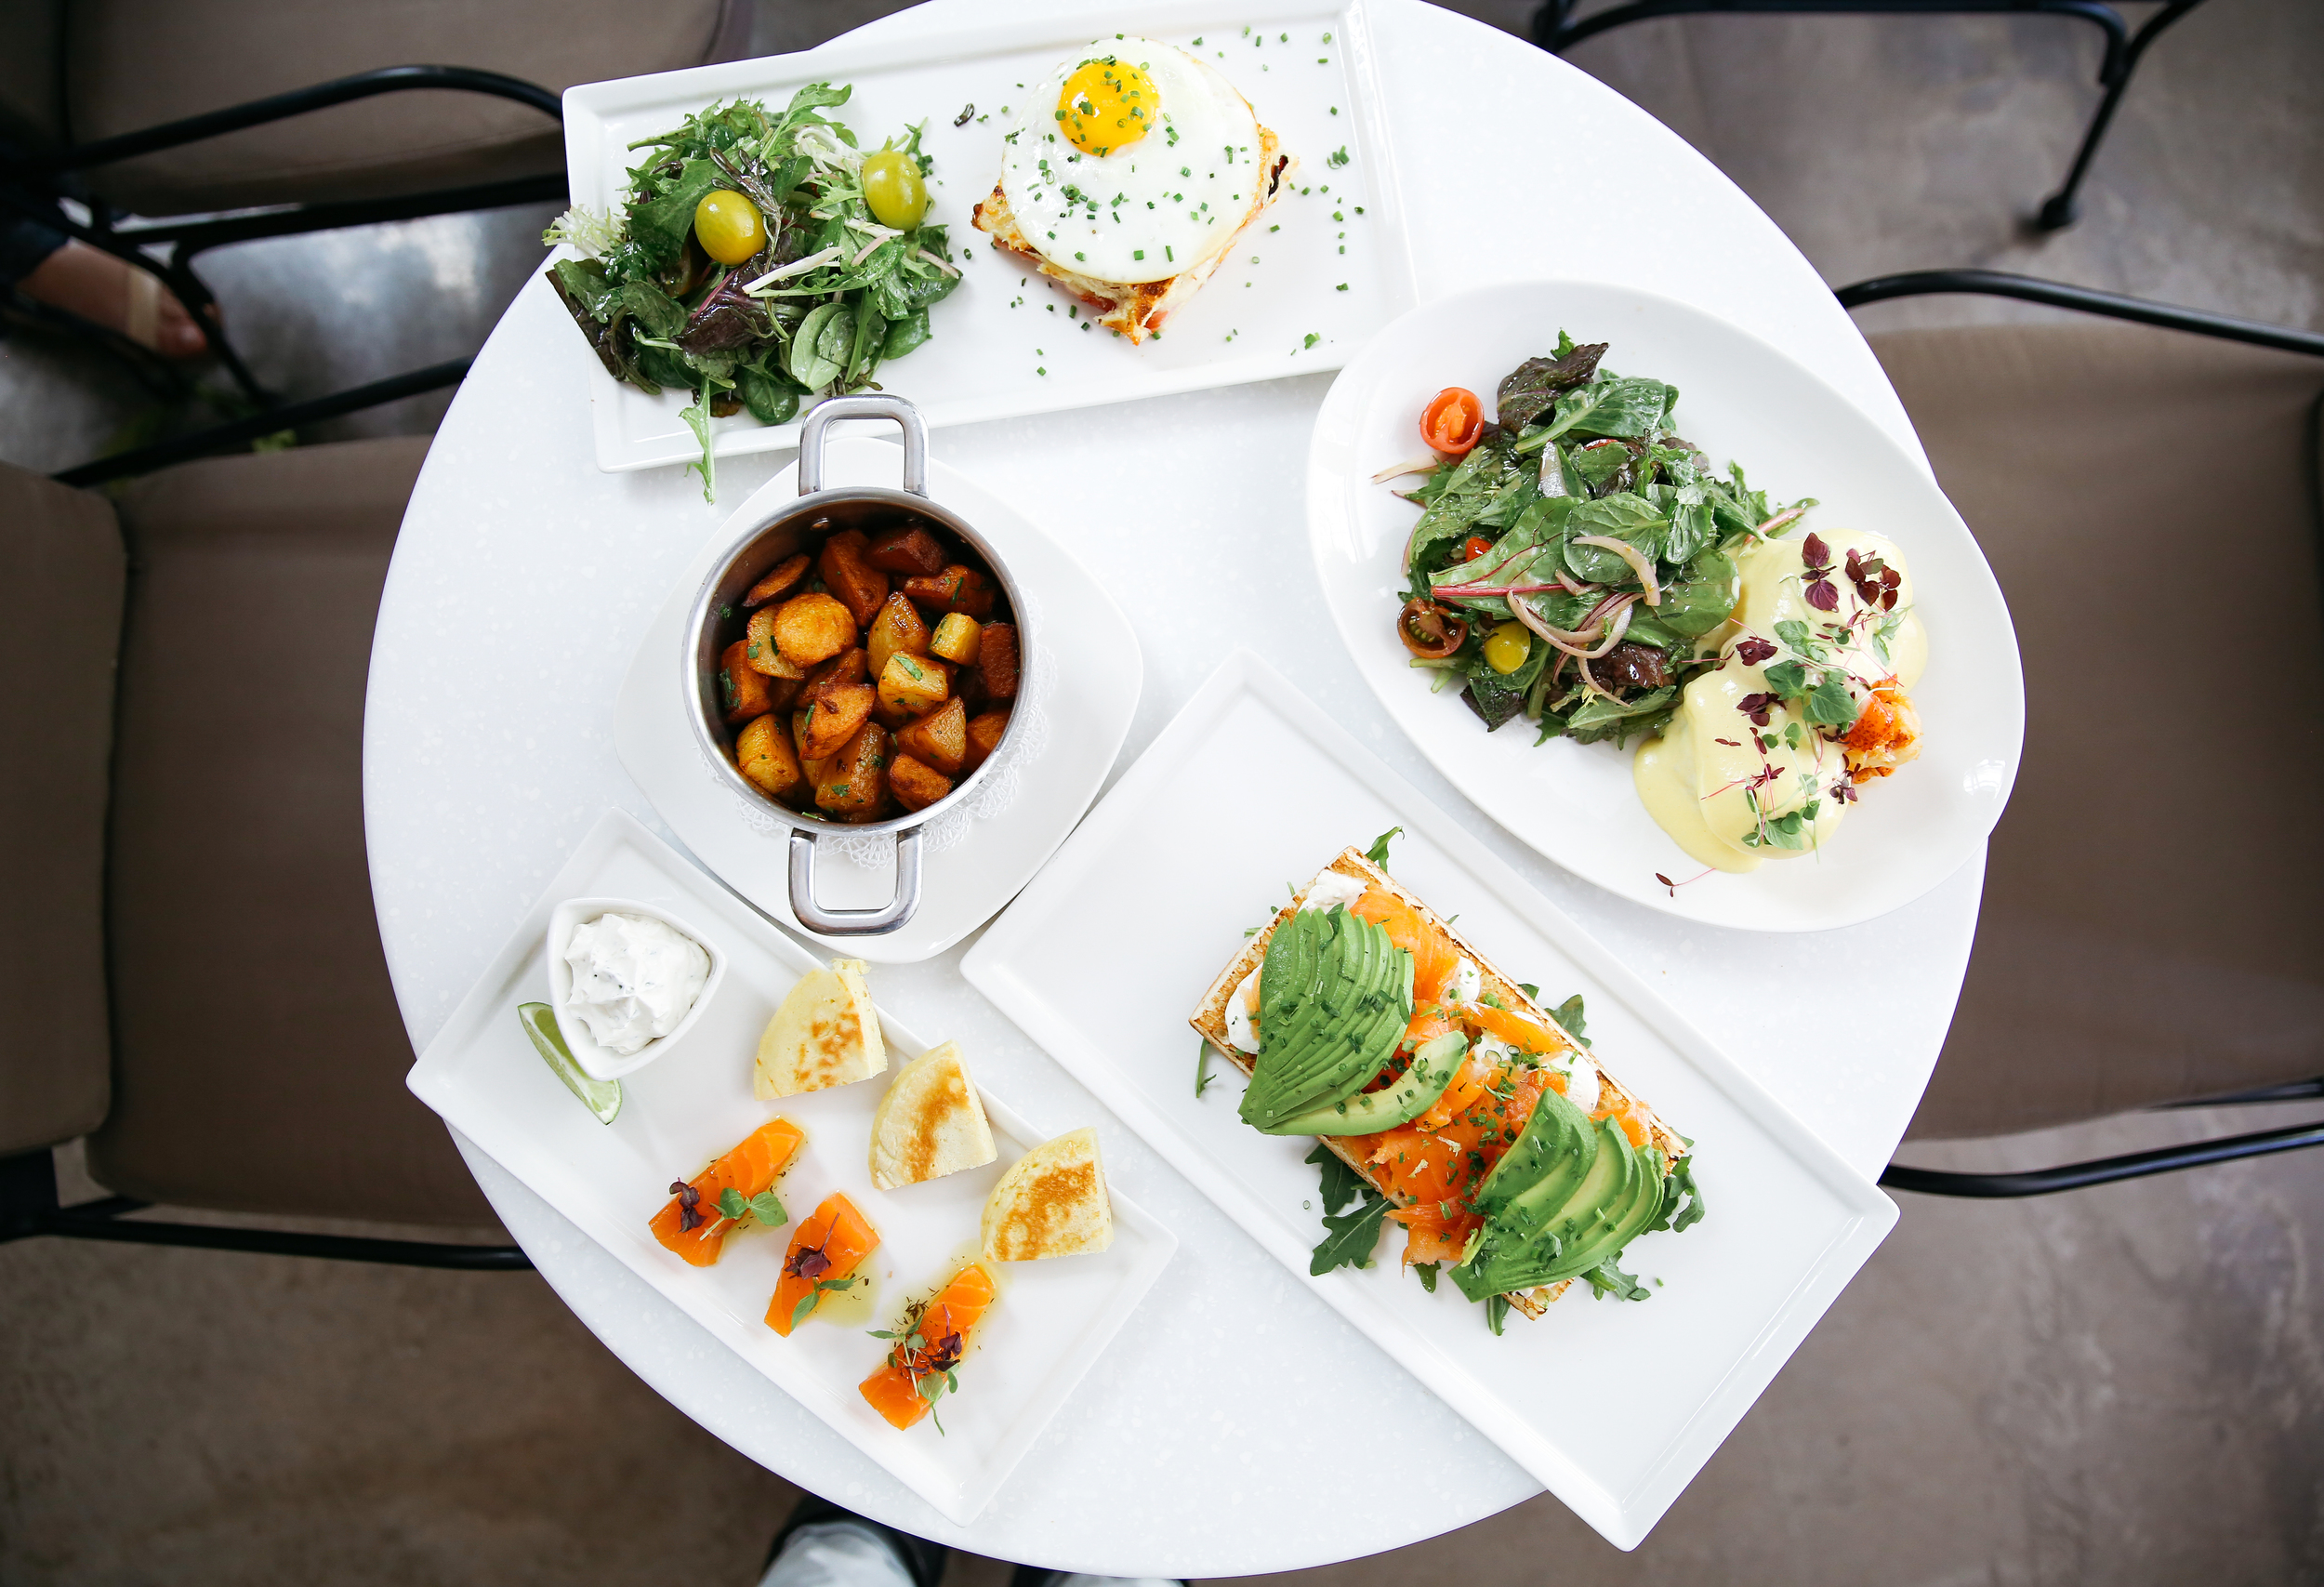 Some of the delicious brunch offerings at    Le Petit Pari  s . (From Top- Croque Madame, Lobster Eggs Benedict, Smoked Salmon Tartine, Salmon Gravlax, House Potatoes)